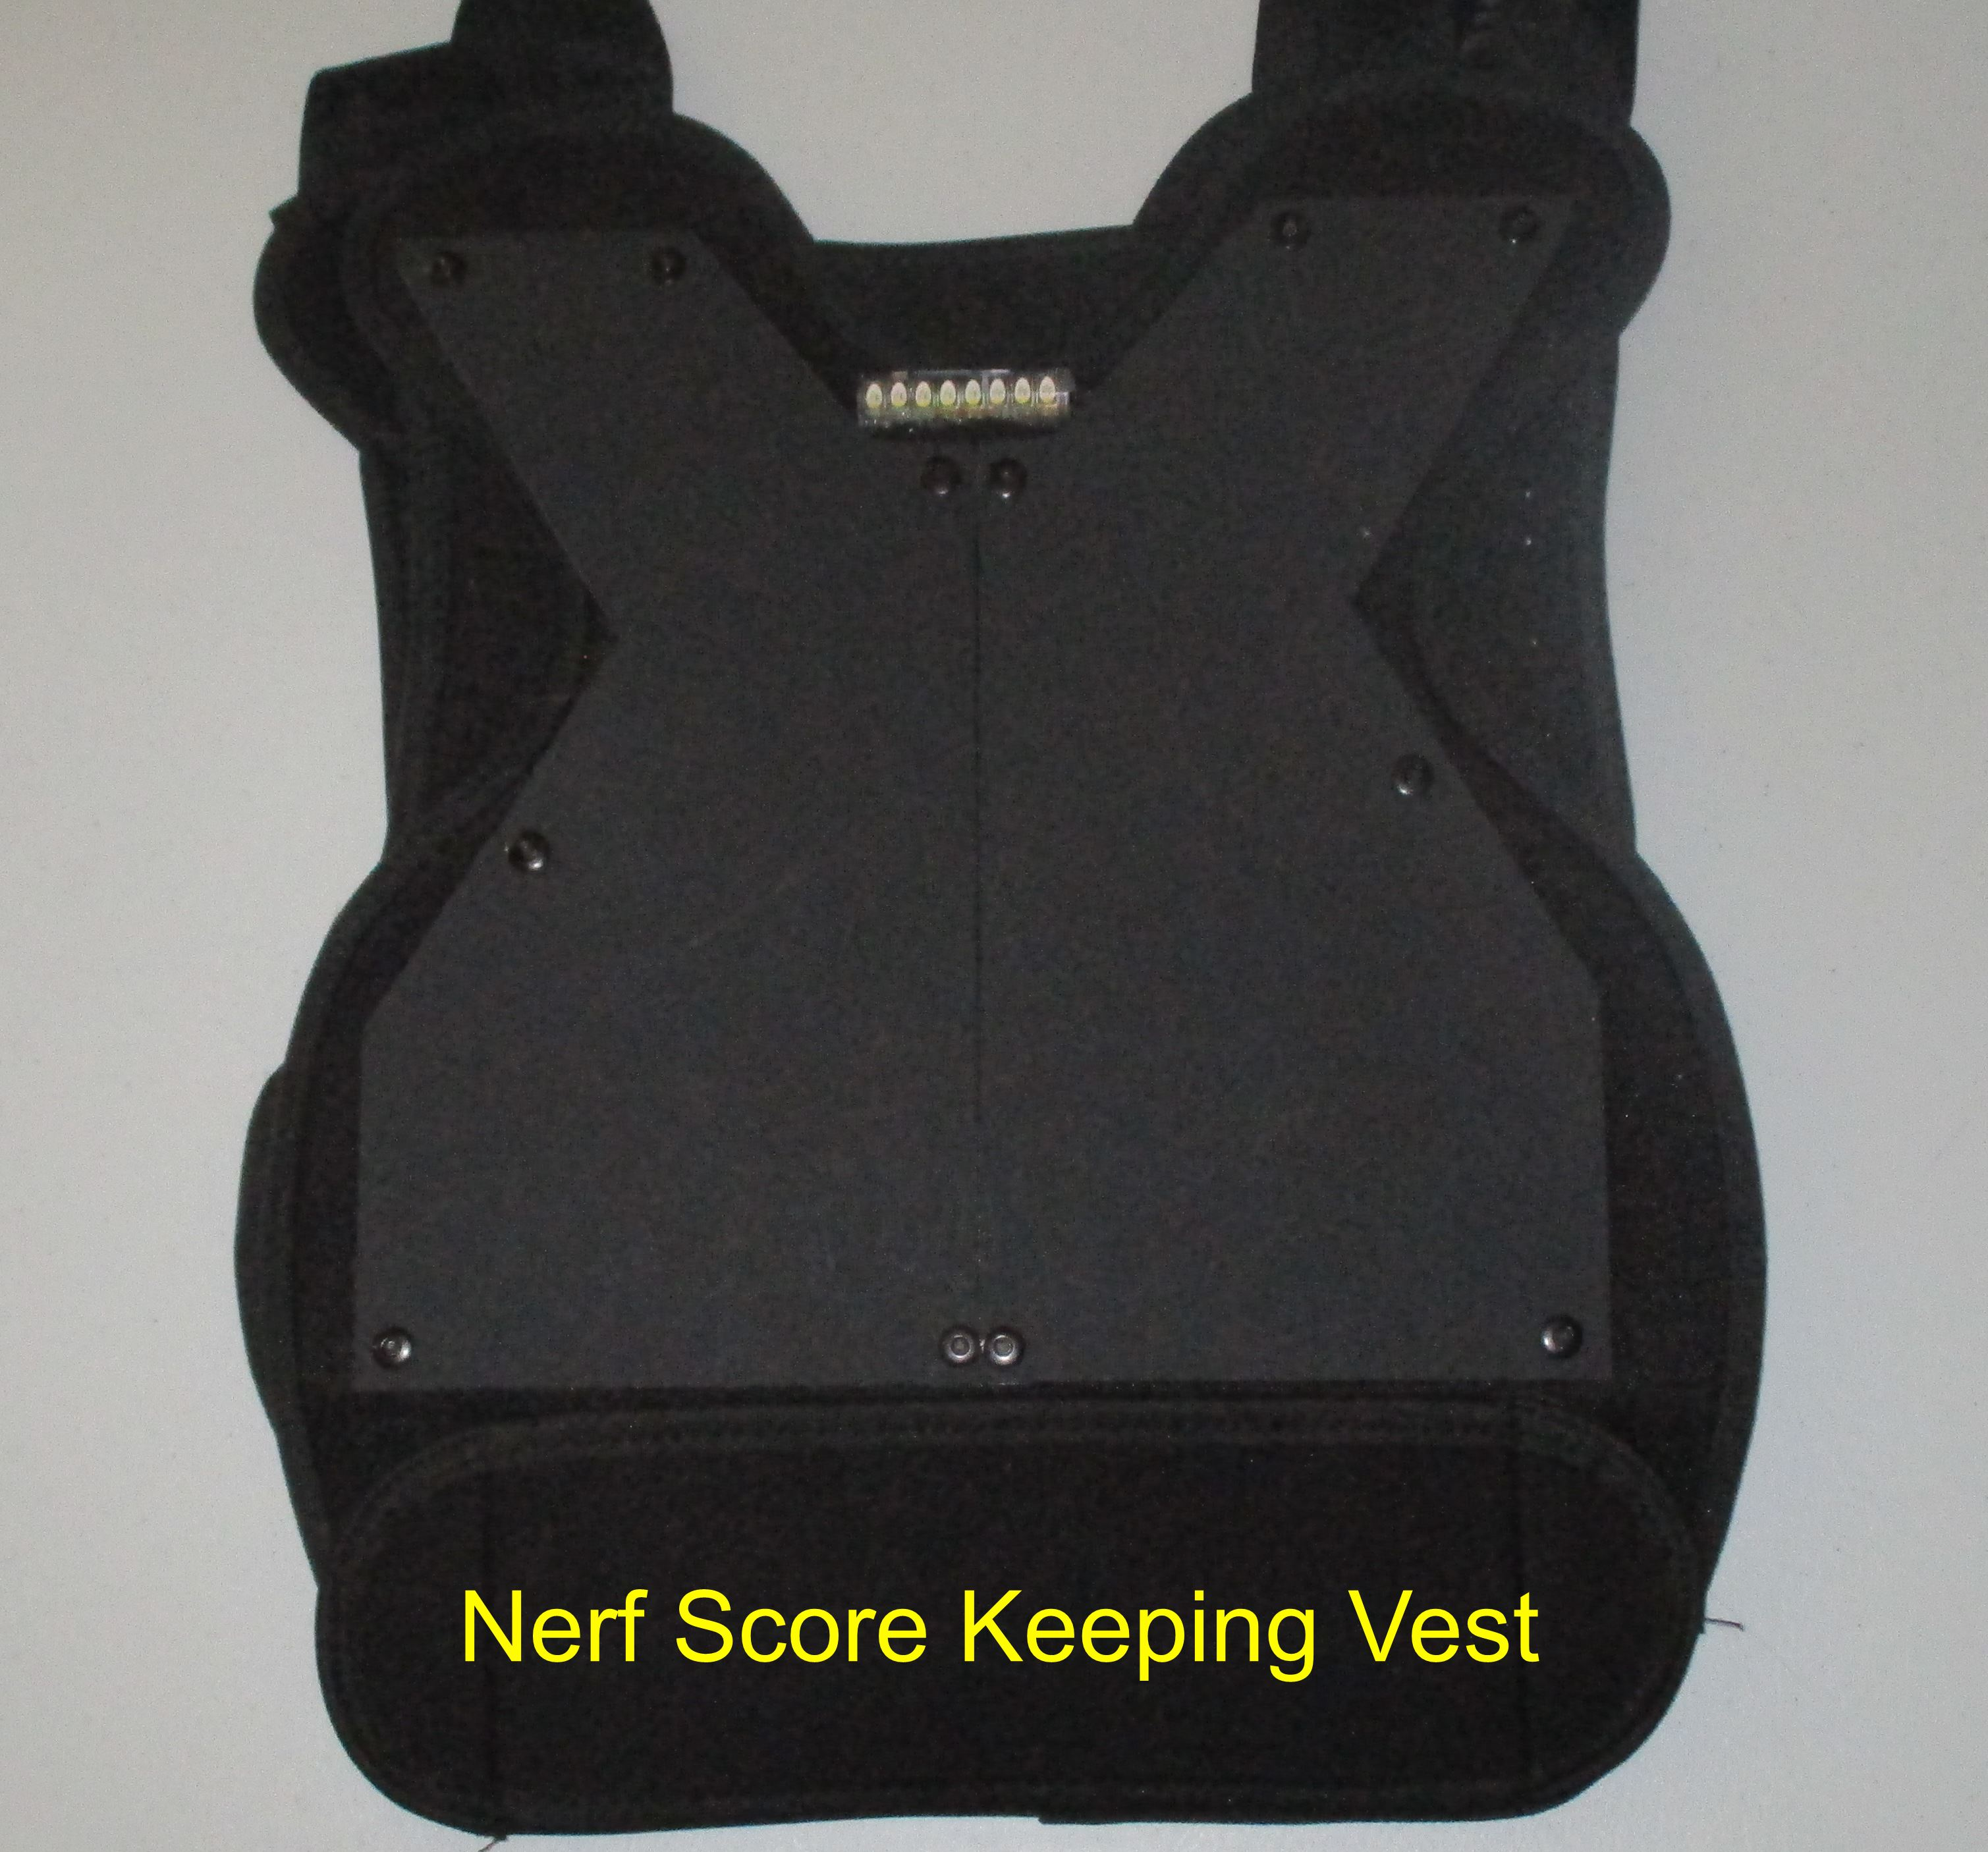 Nerf Score Keeping Vest - Personal Use